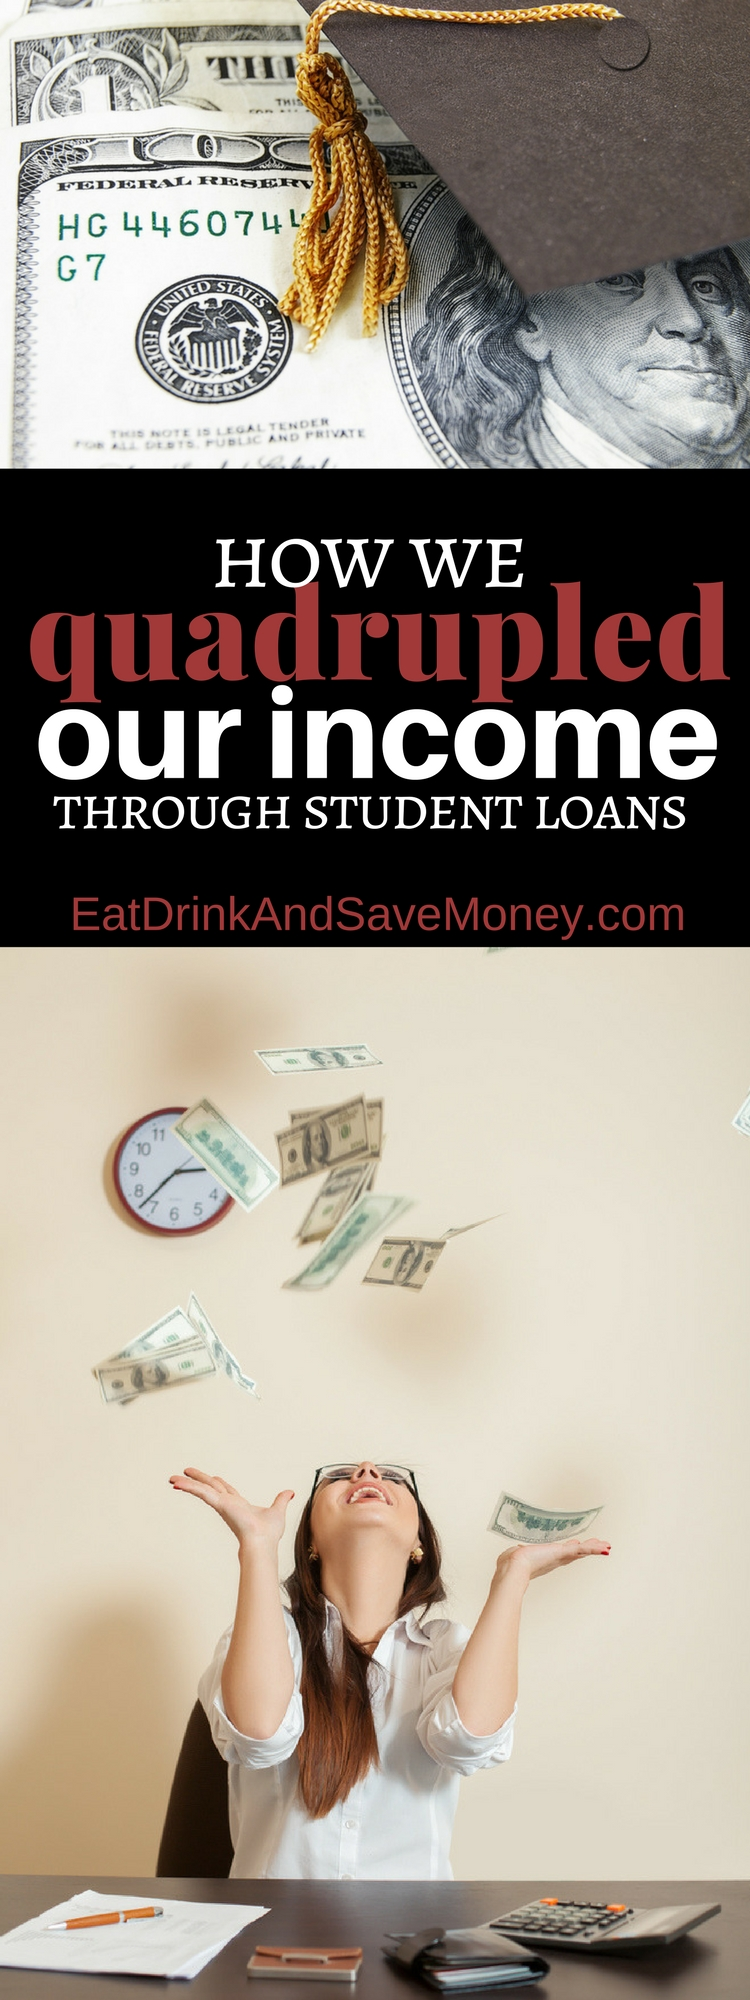 How we quadrupled our income through student loans.